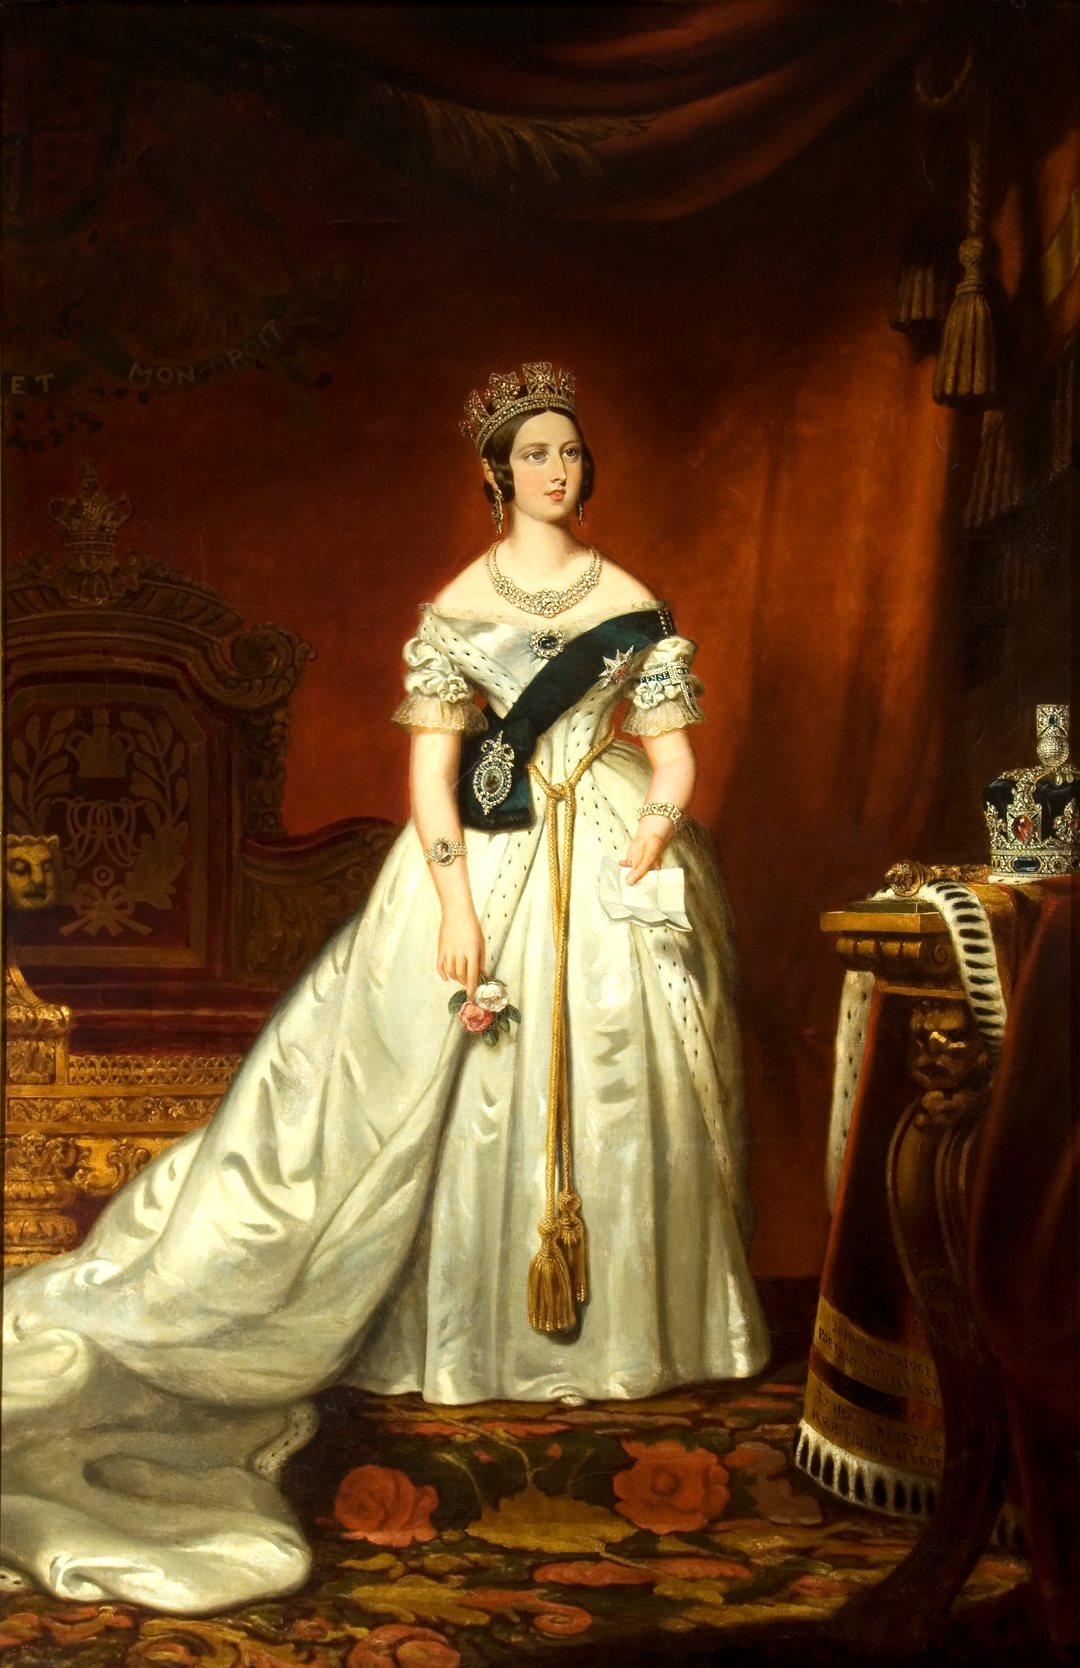 The royal portrait of Victoria that hangs in the Senate foyer was painted in 1842, the fifth year of her reign, and captures the optimistic, energetic young queen during the days when bold new ideas about social and government reform reinvigorated the British Empire.